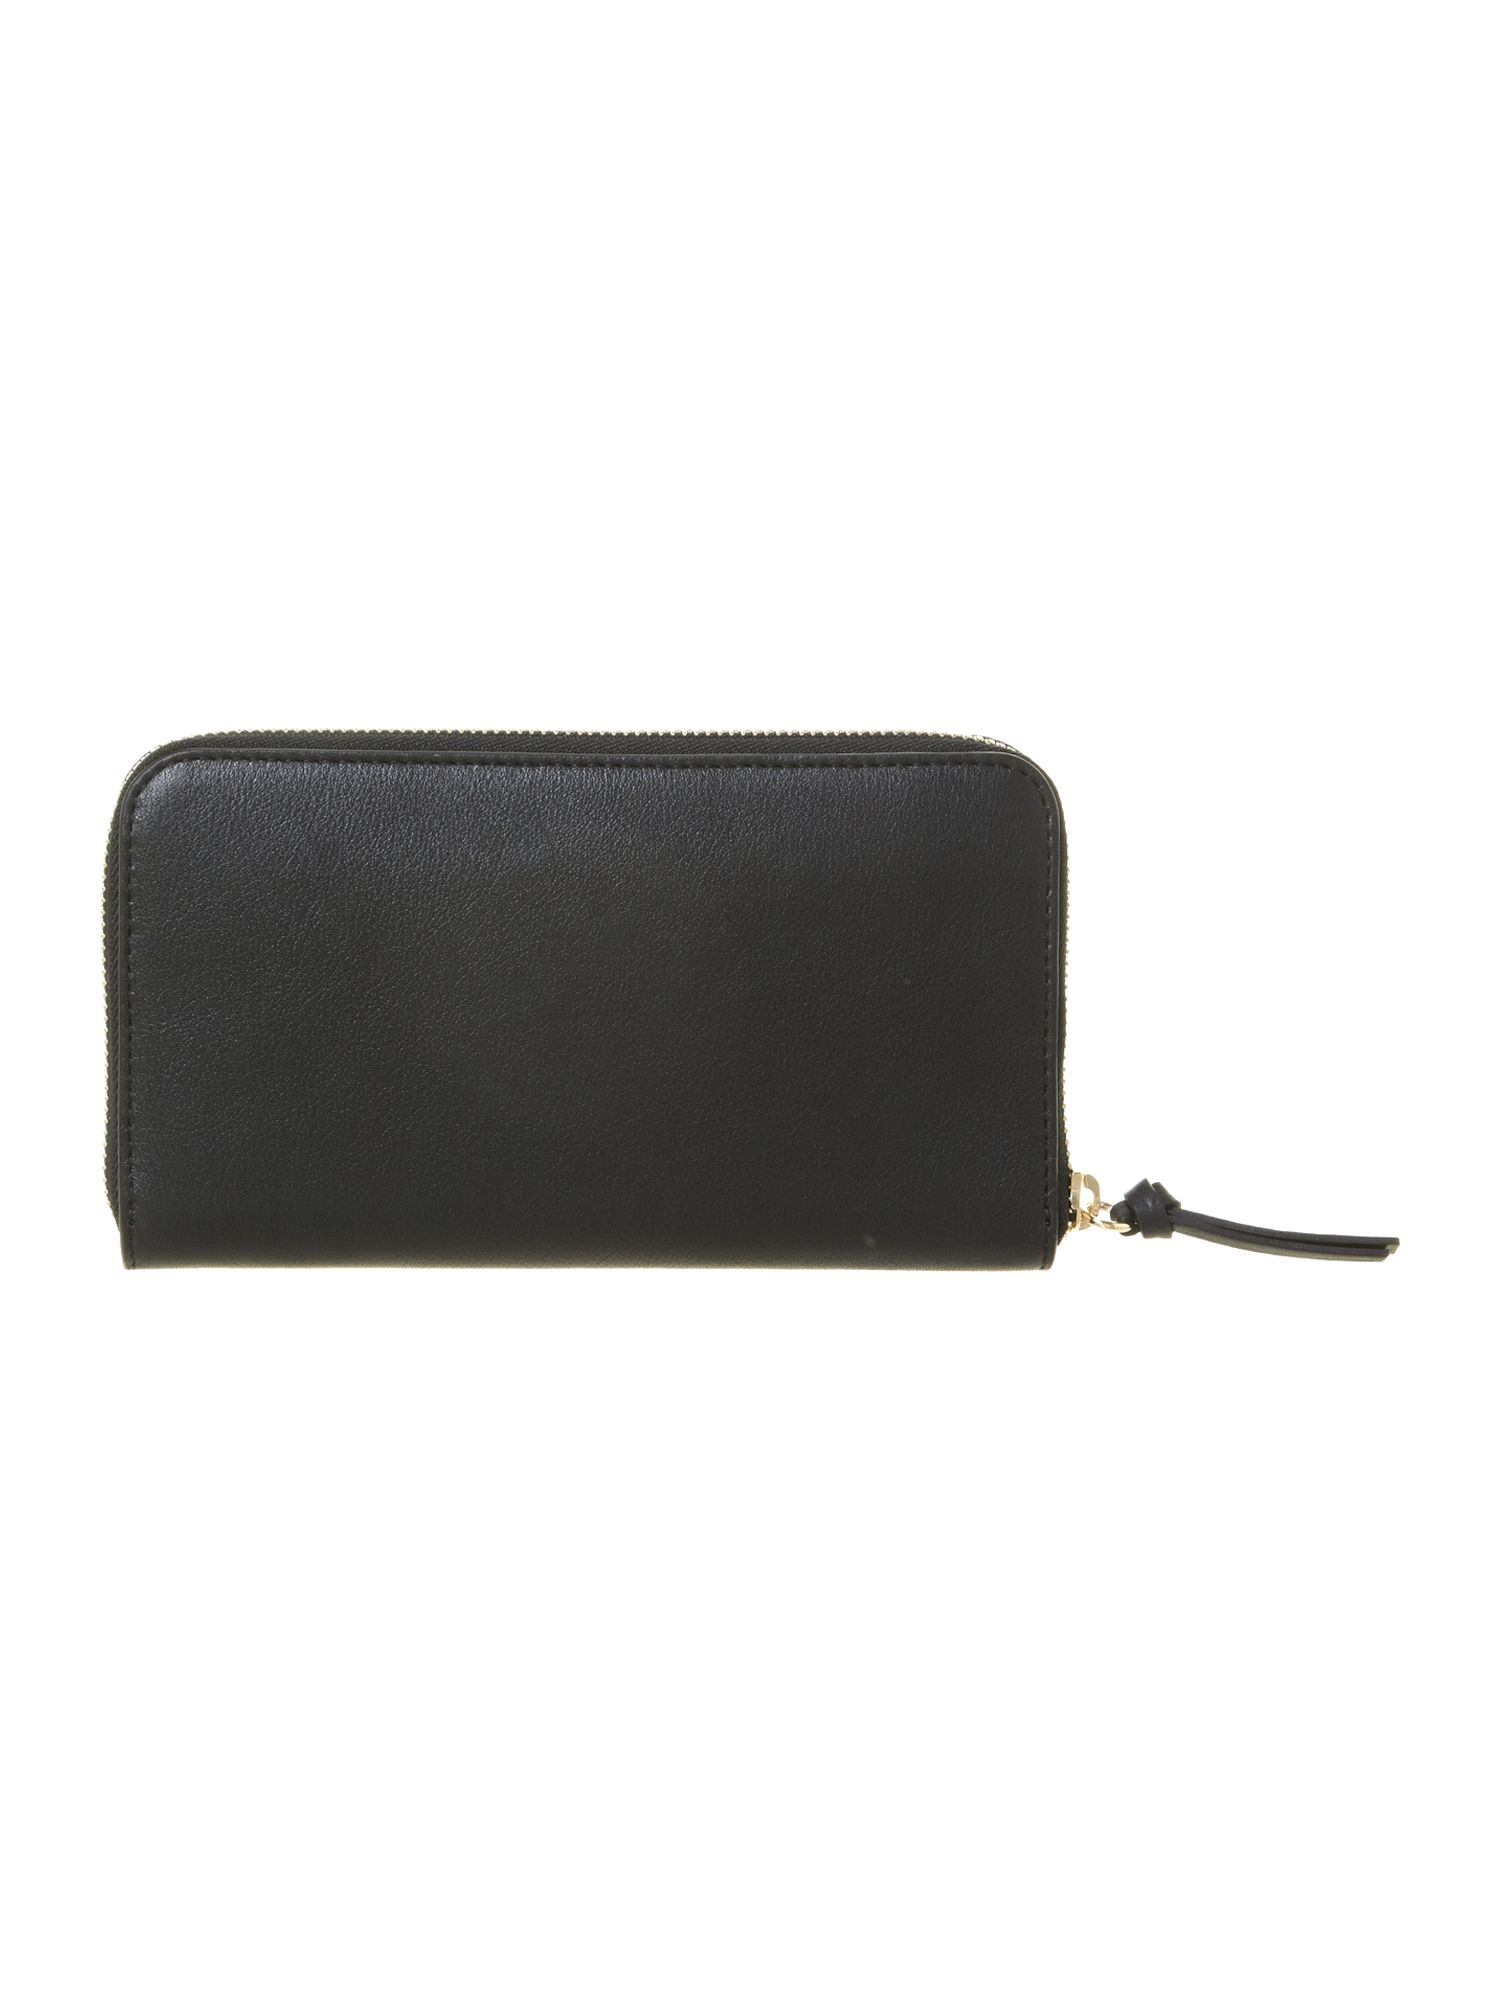 Babylone black large zip around purse